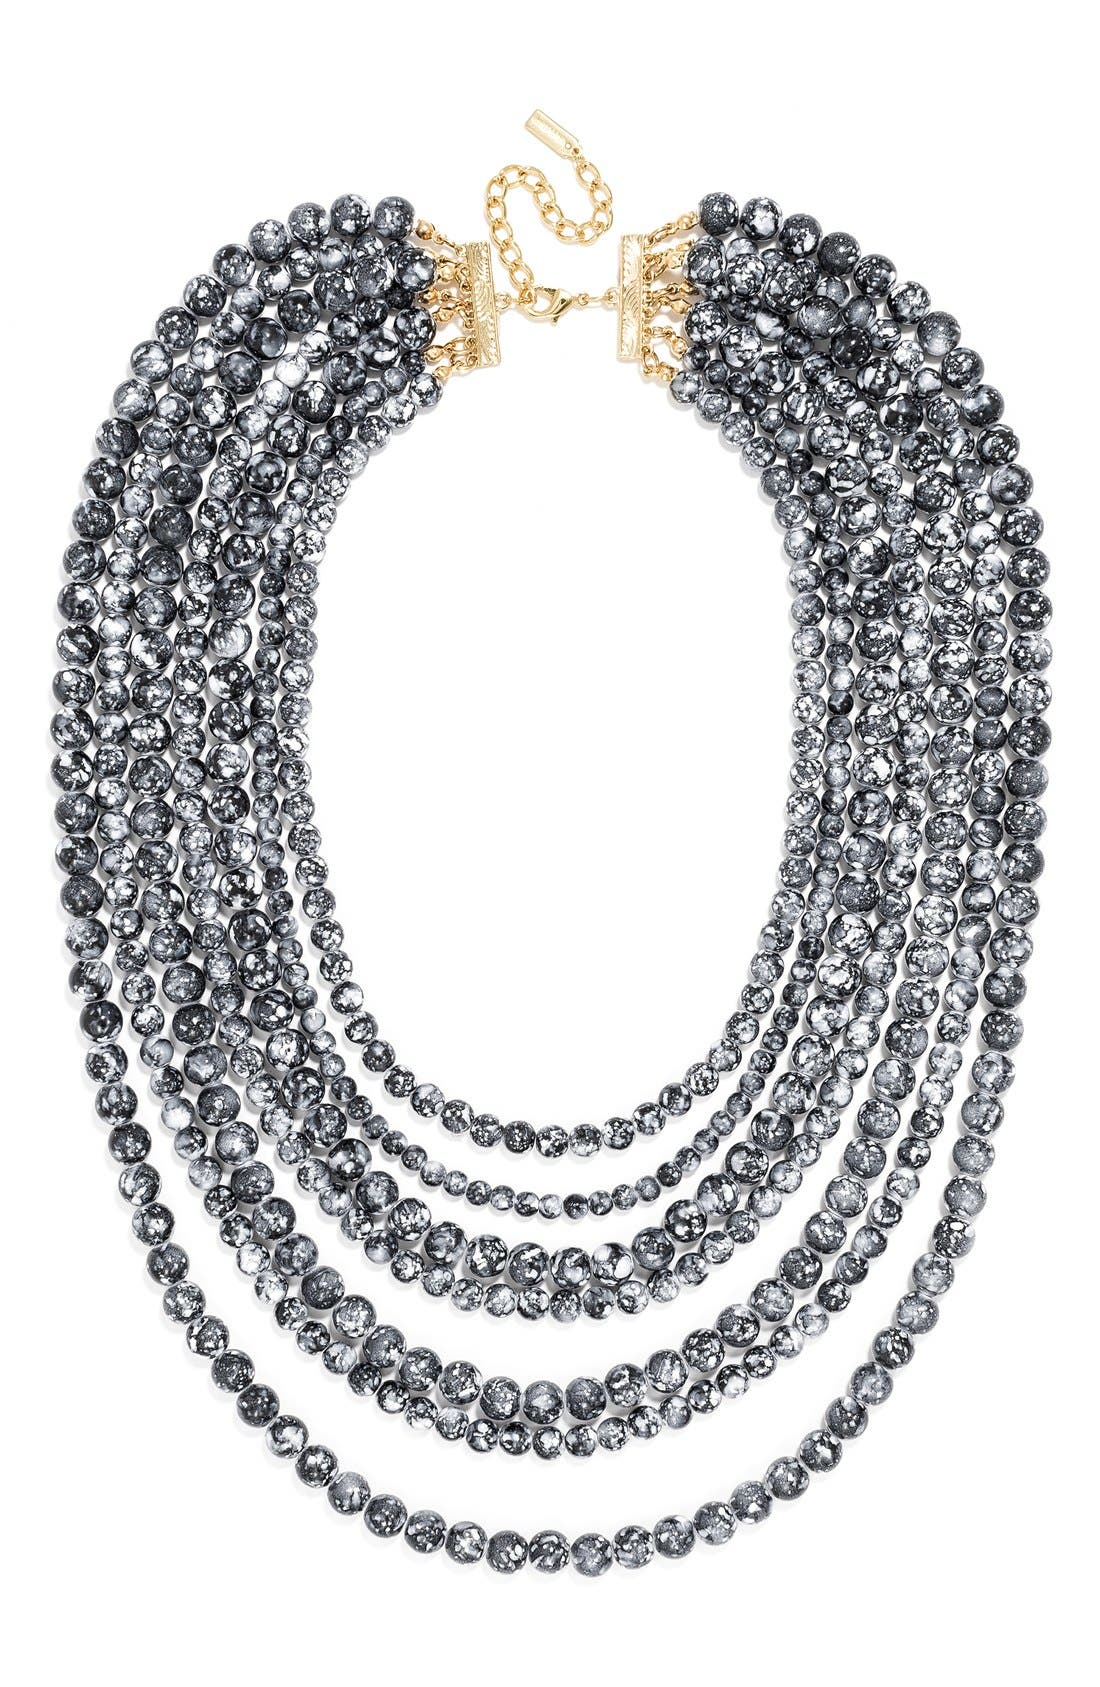 'Bold' Multistrand Beaded Statement Necklace,                             Main thumbnail 1, color,